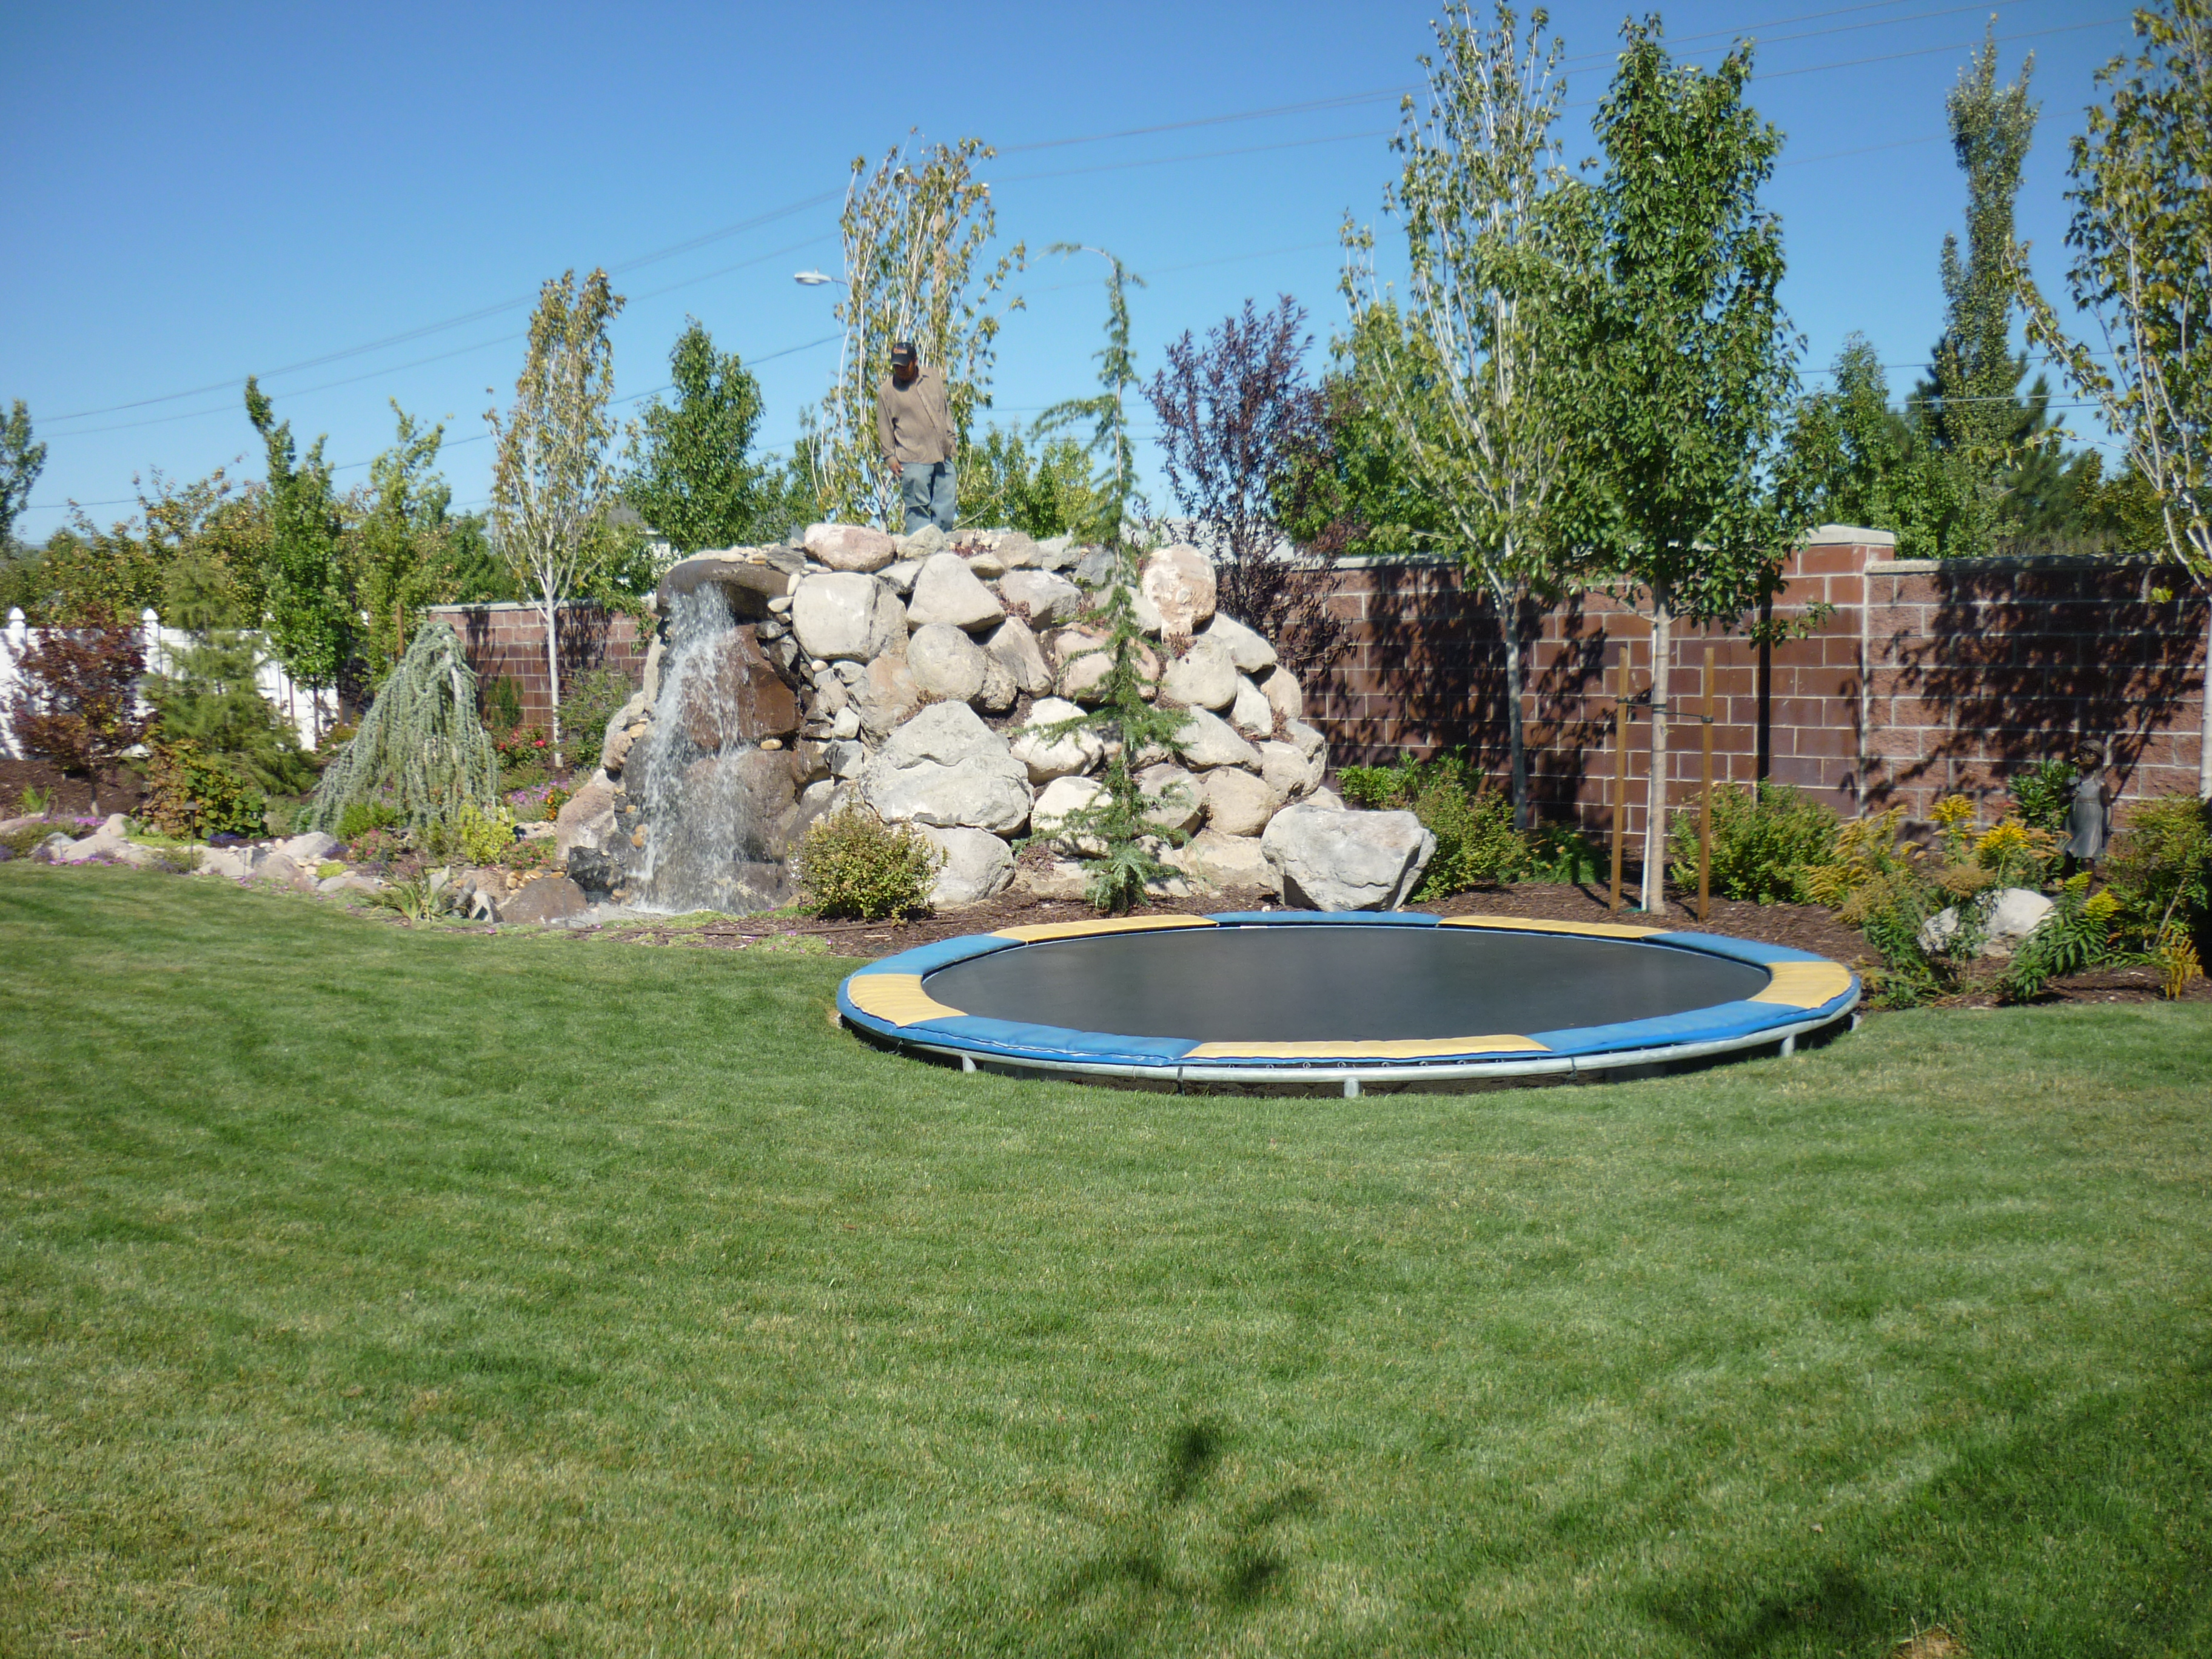 Backyard Nature Playground : Landscapers, landscaping, Swimming pools and construction in Salt lake